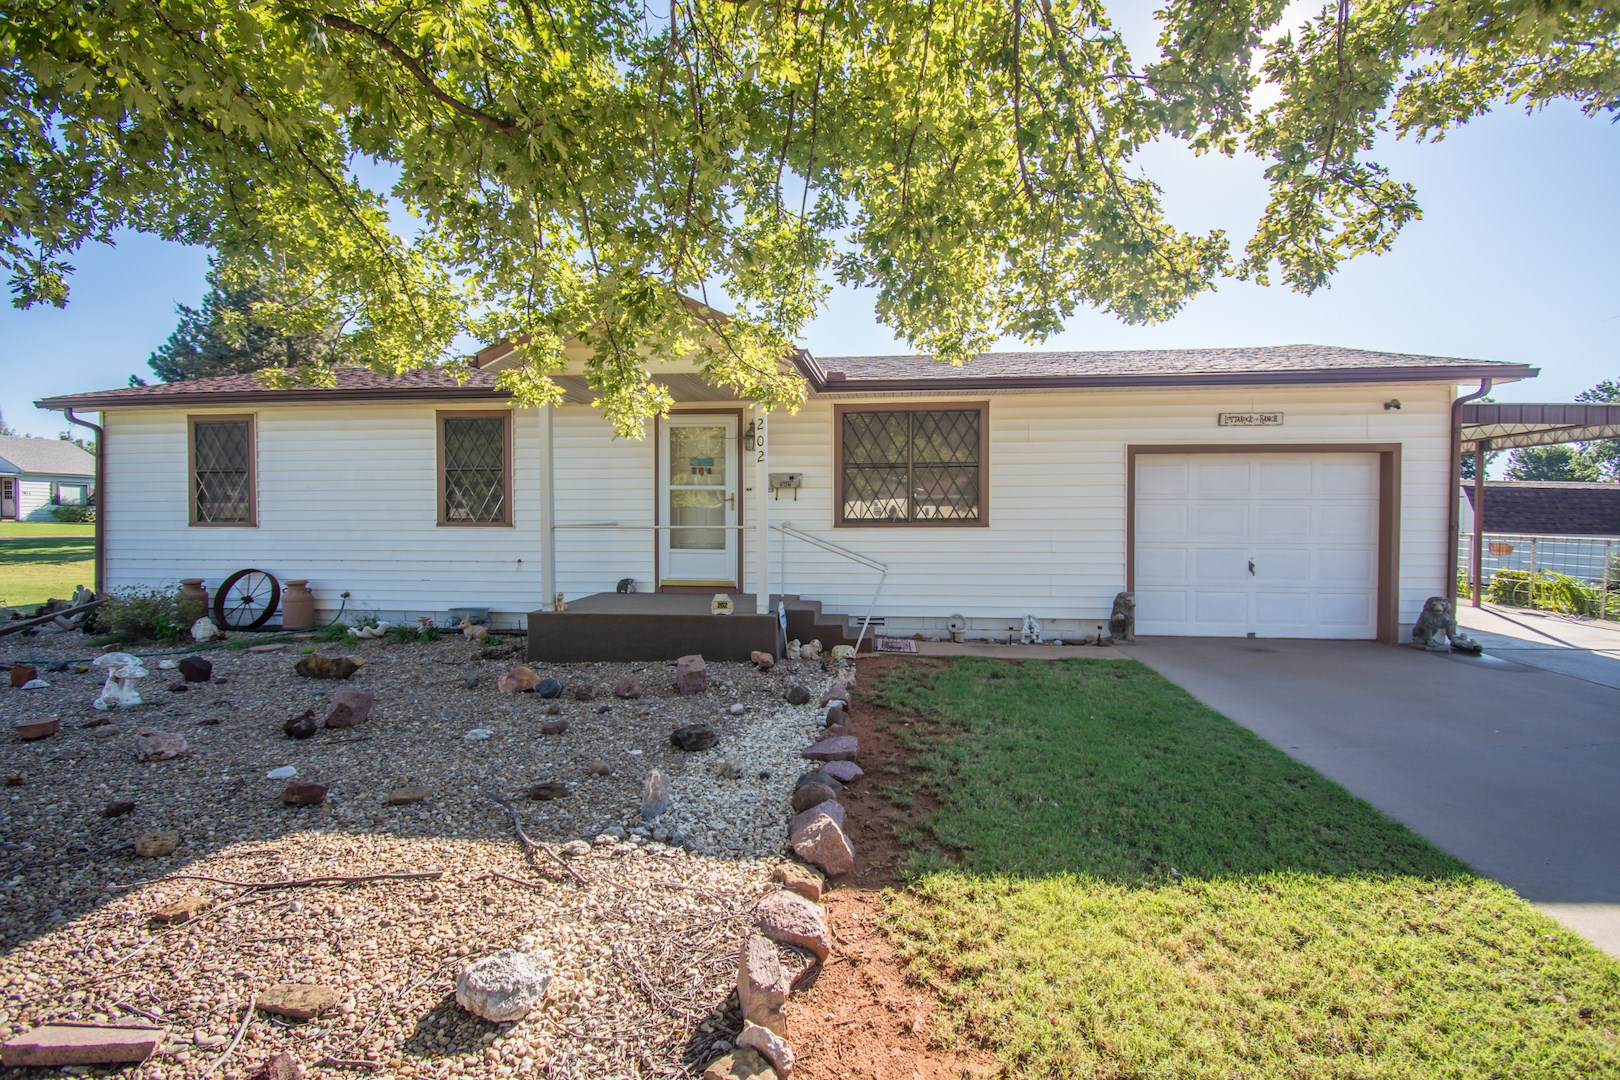 HOME FOR SALE IN ELK CITY ON 3 LOTS LOCATED ON THE CORNER